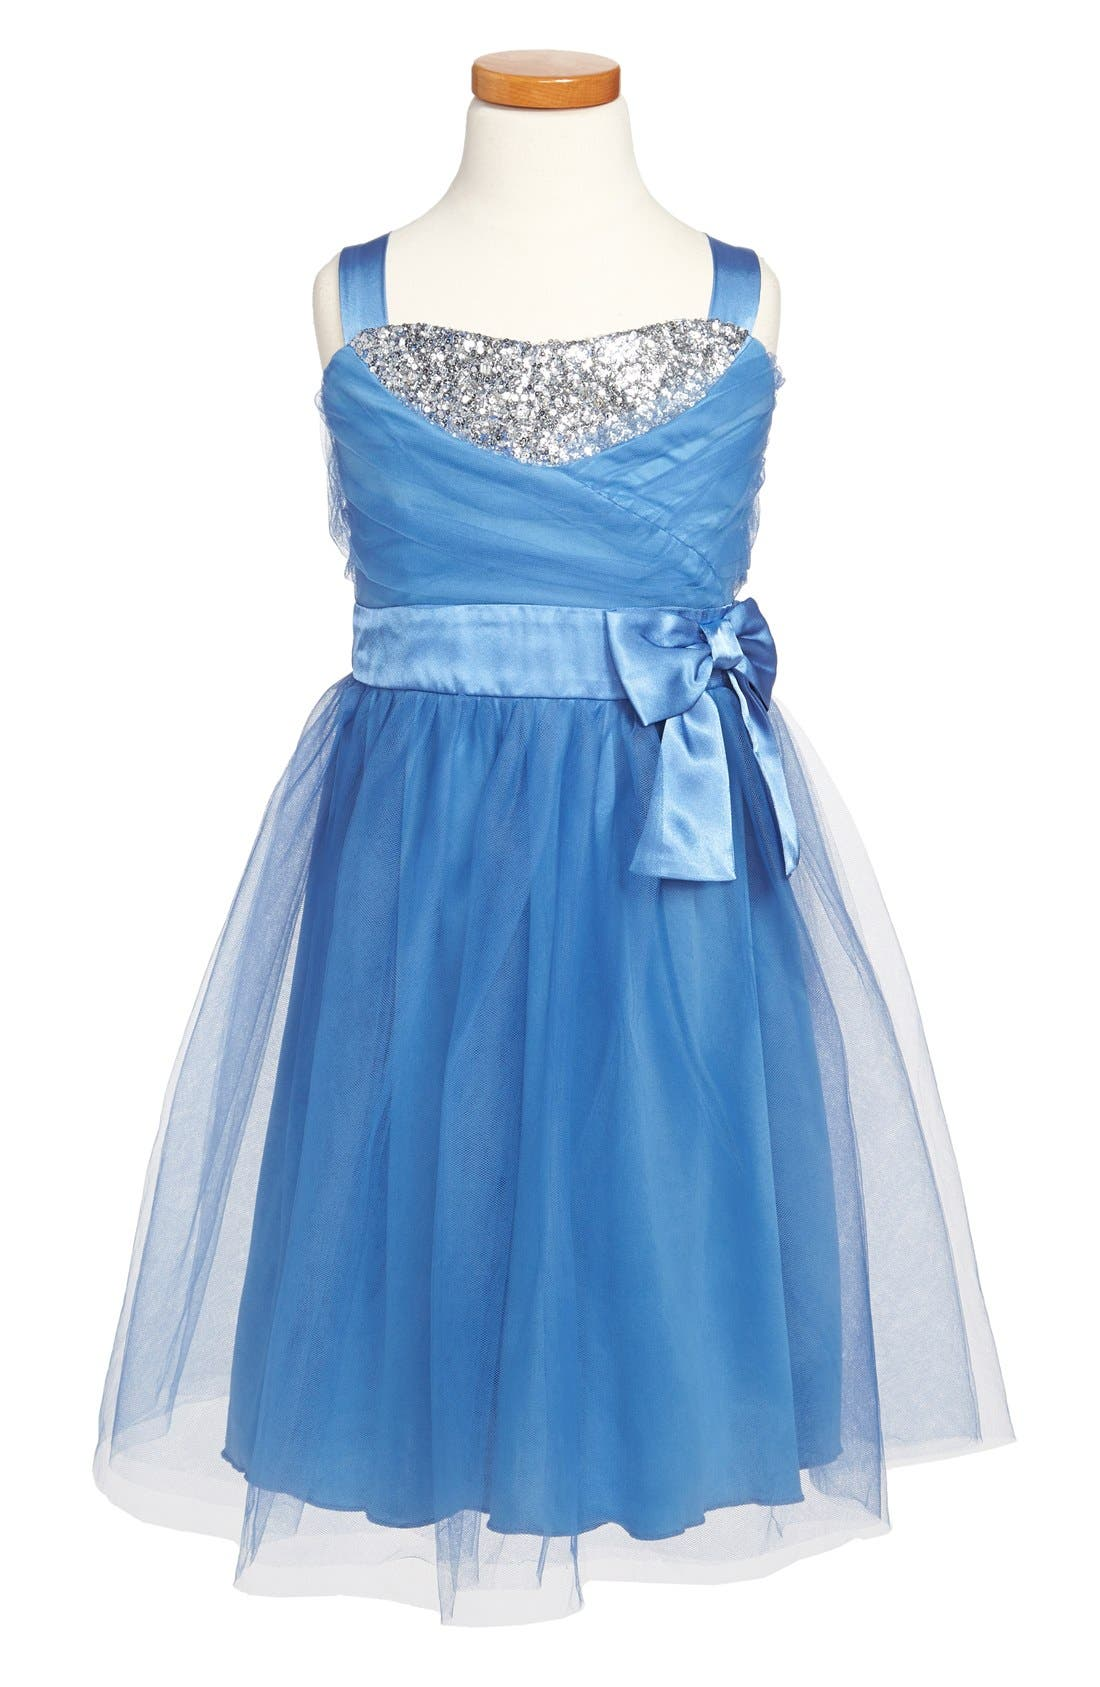 Main Image - Roxette Tulle Dress (Big Girls)